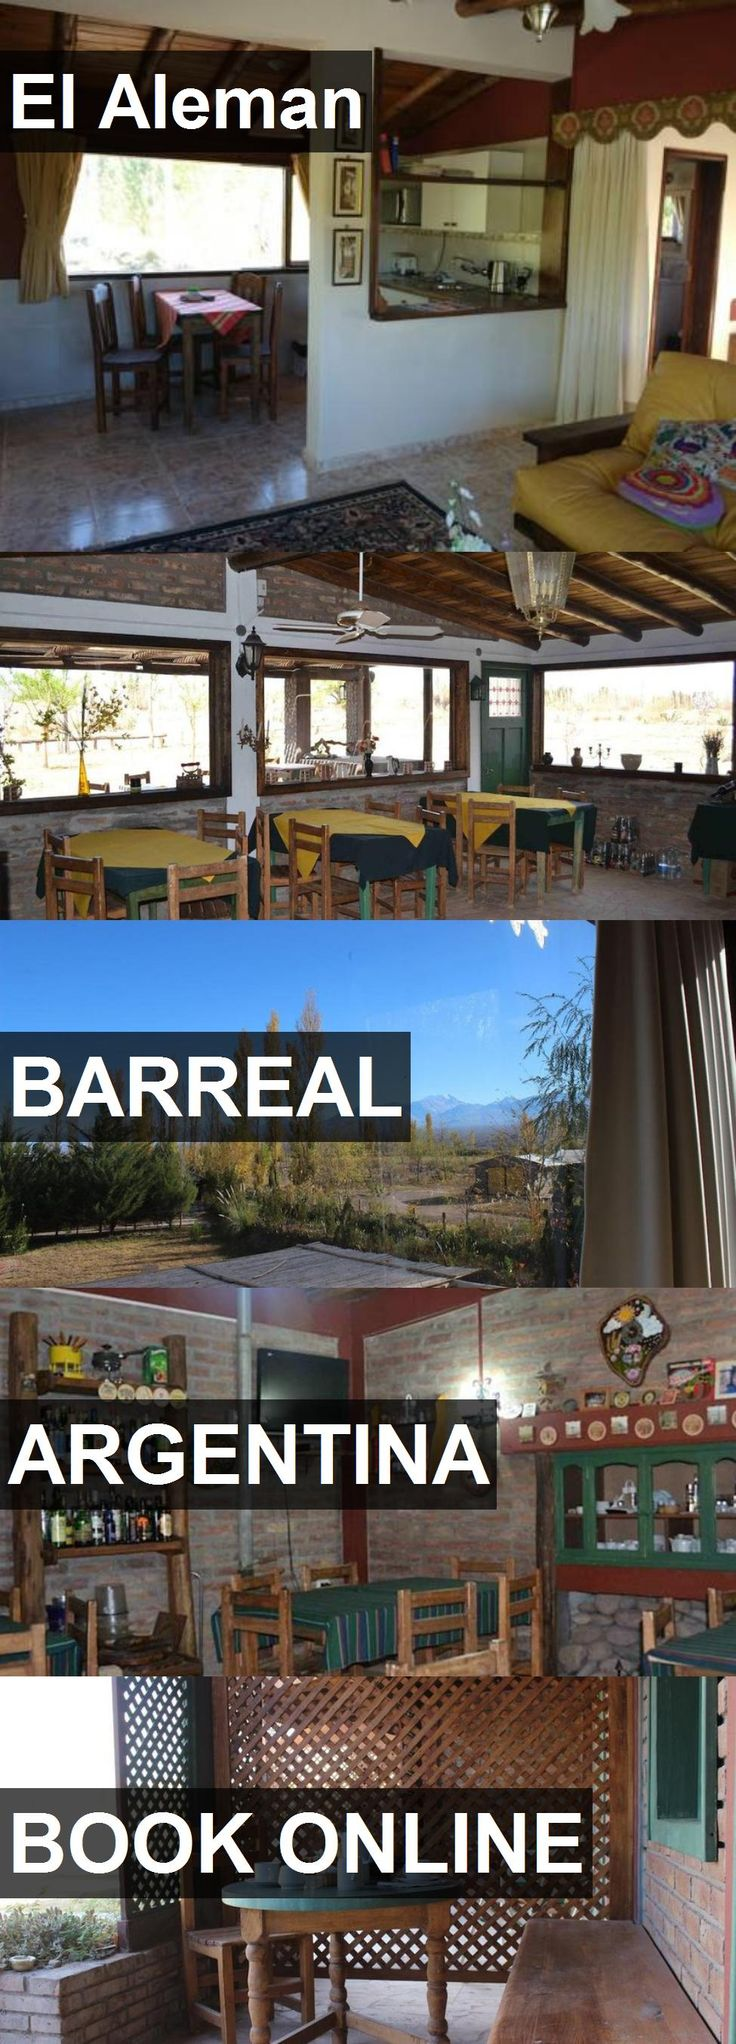 Hotel El Aleman in Barreal, Argentina. For more information, photos, reviews and best prices please follow the link. #Argentina #Barreal #travel #vacation #hotel